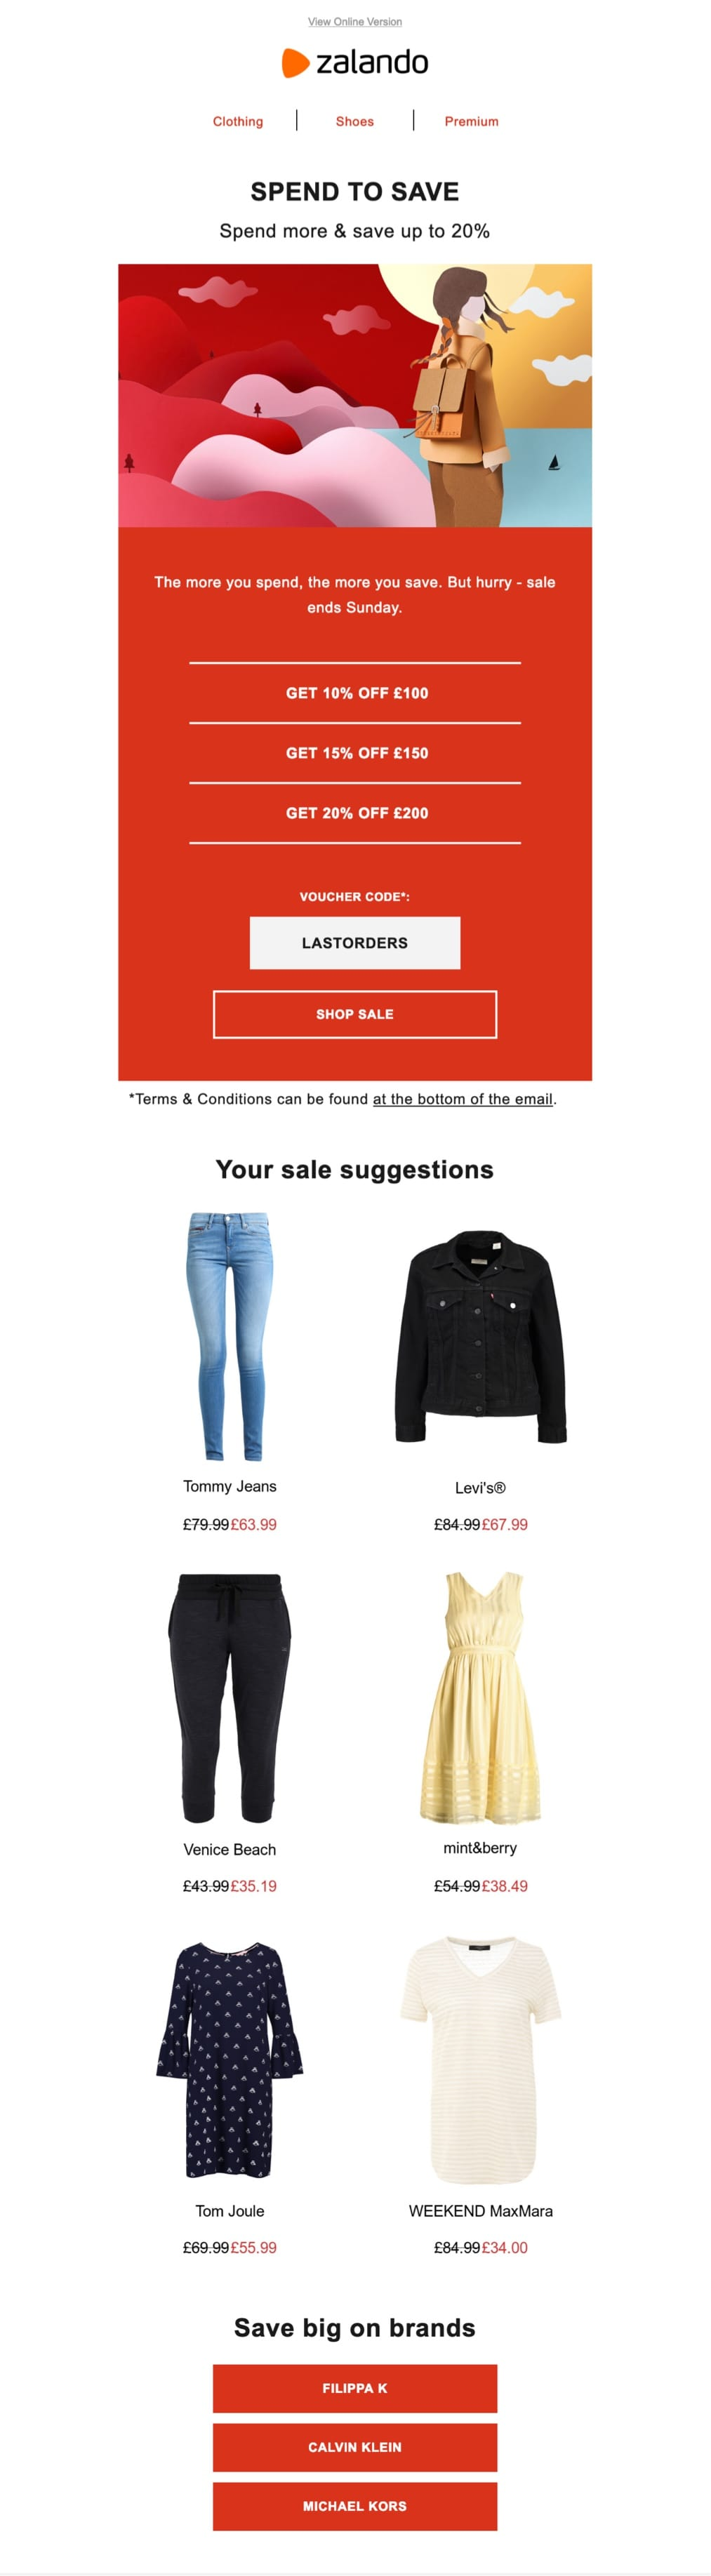 promotional email example zalando (sale email)